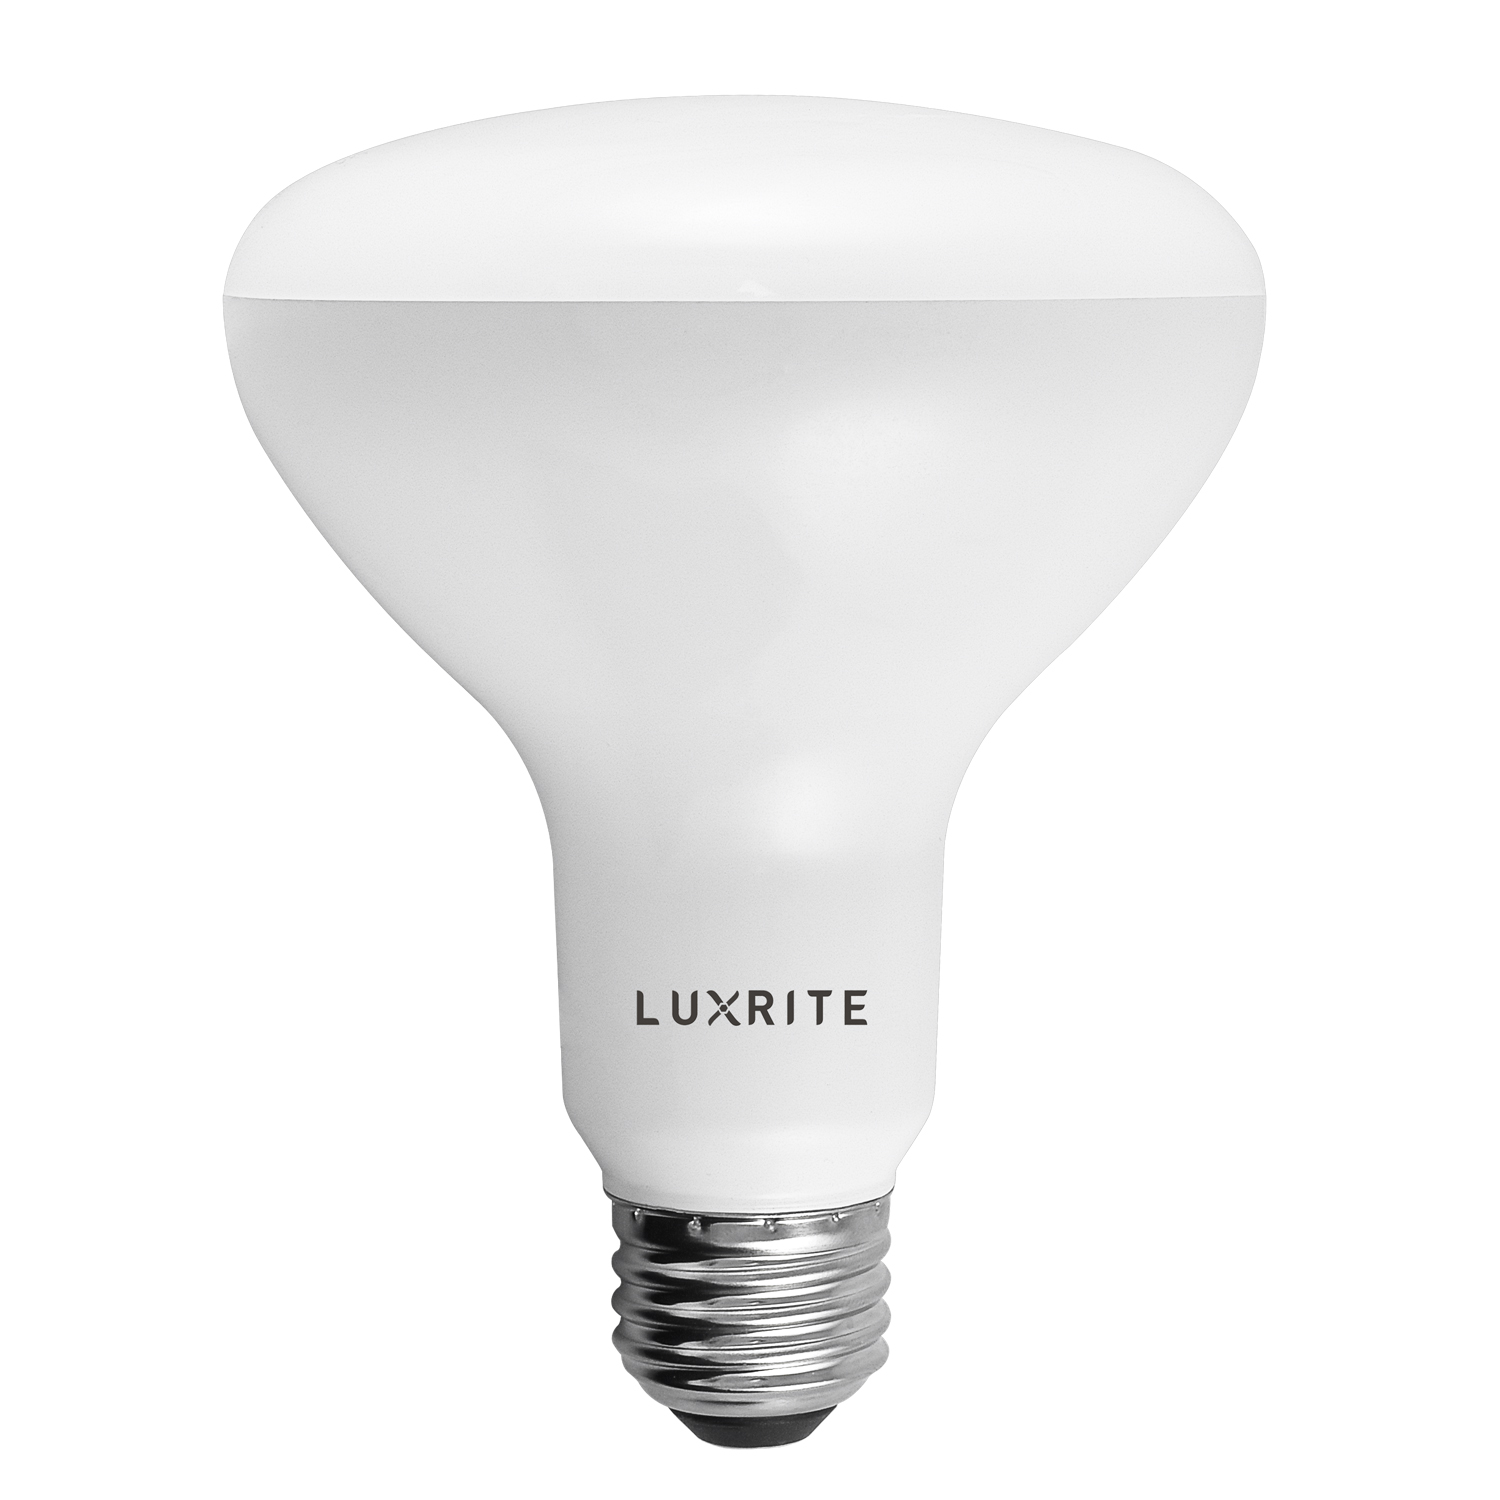 Luxrite Br30 Led Light Bulb 9w 65w Equivalent 3000k Soft White